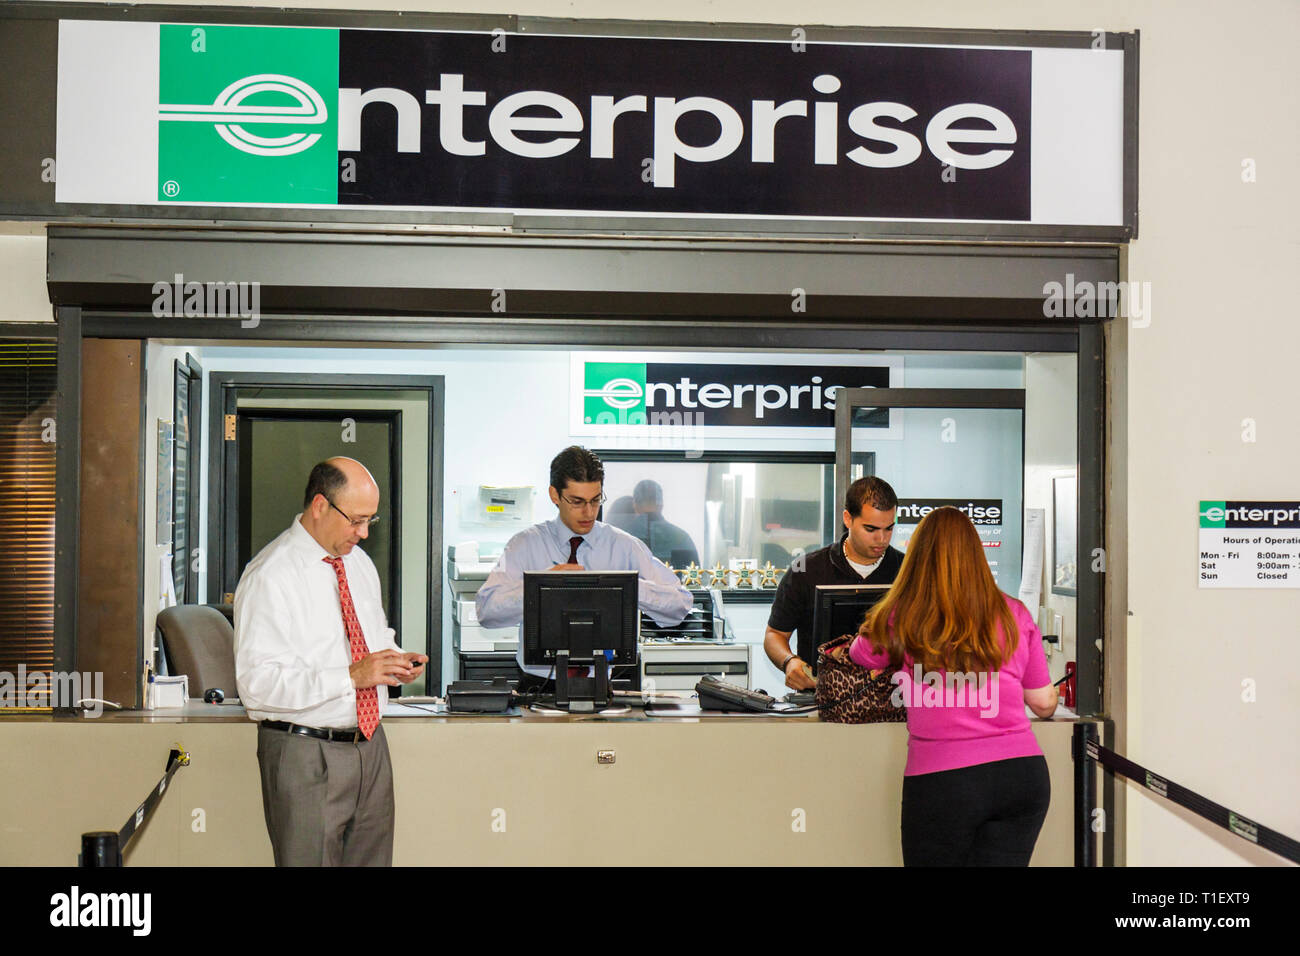 Enterprise Car Rental High Resolution Stock Photography And Images Alamy